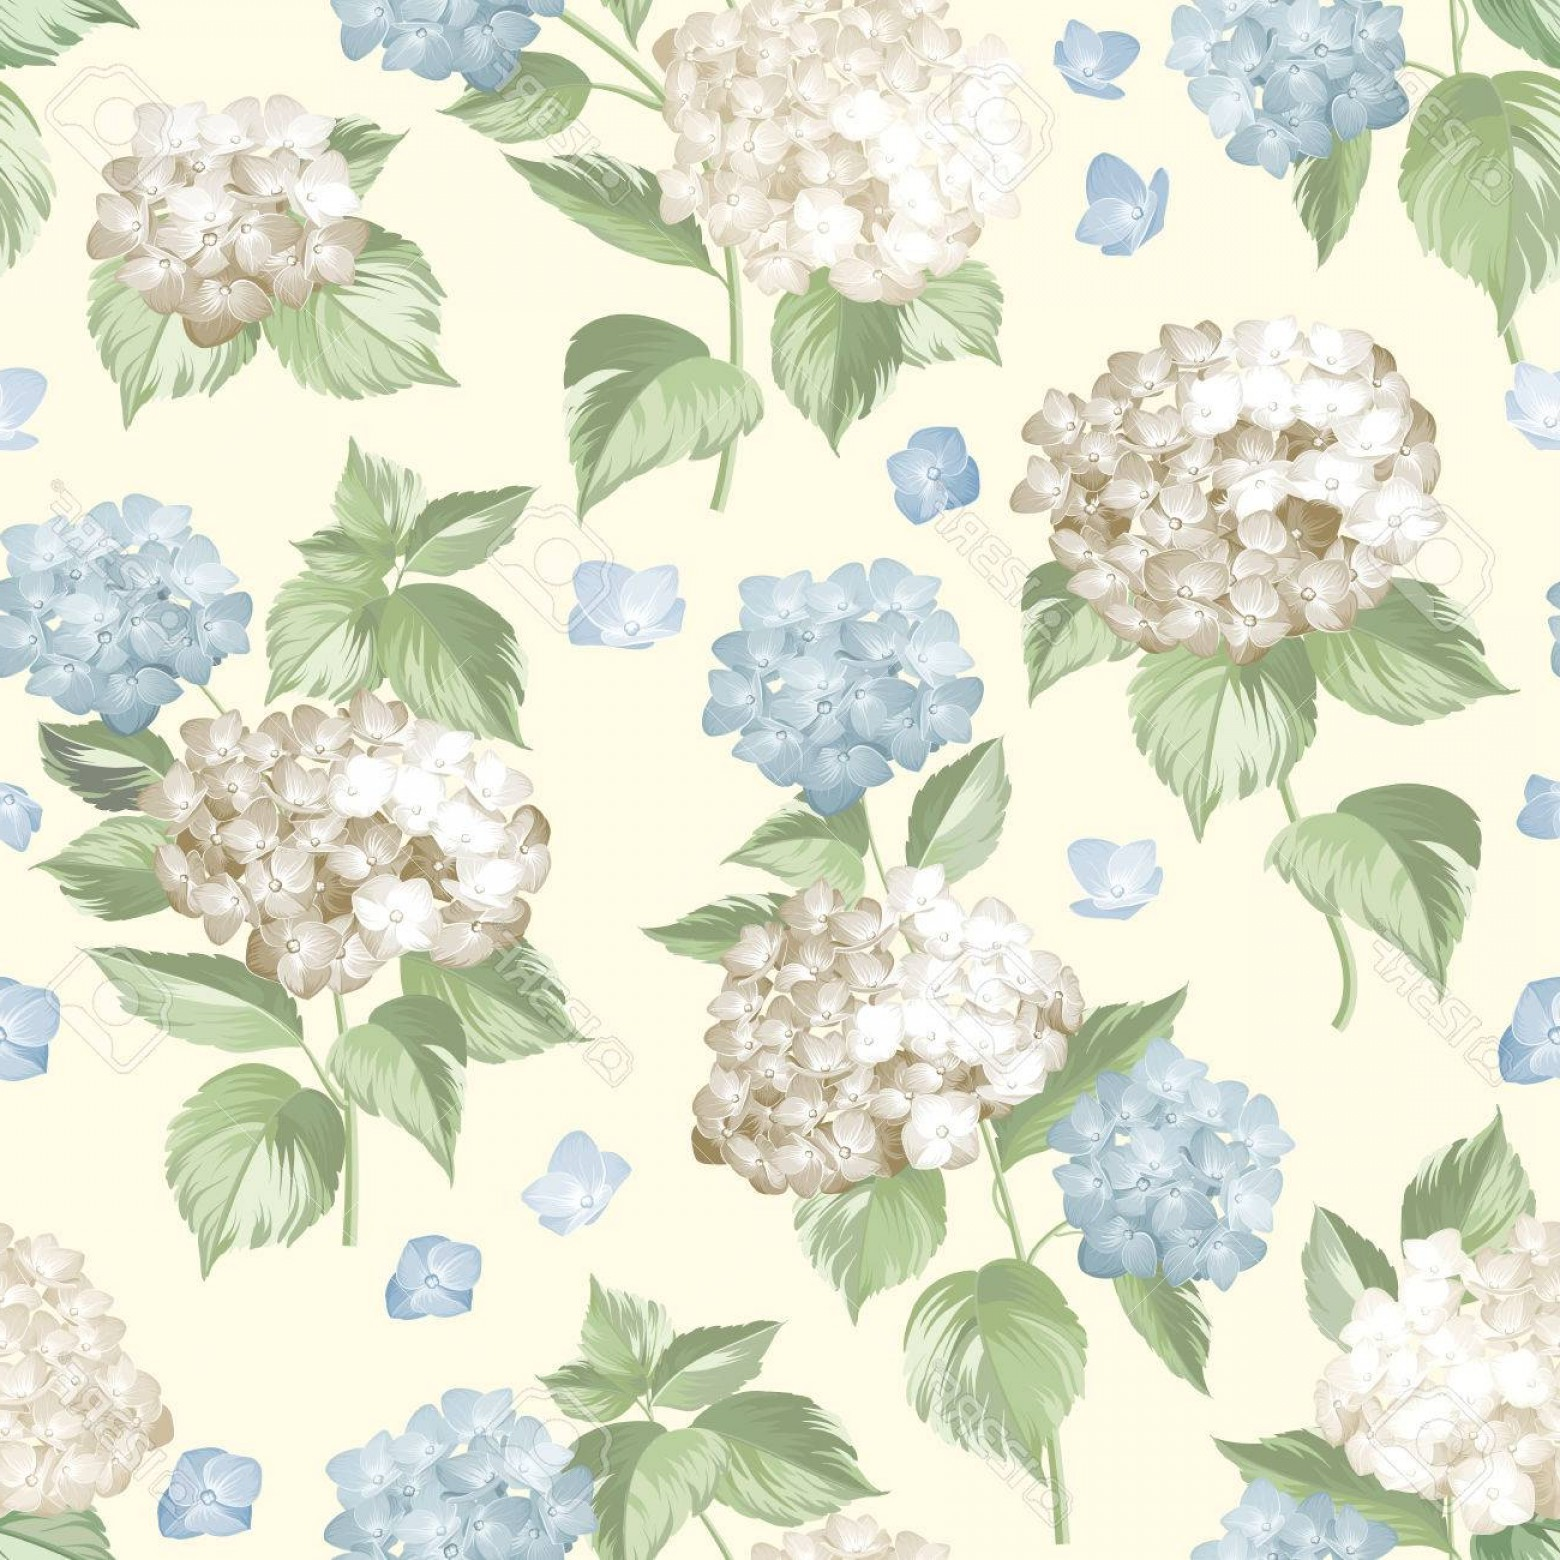 Vector Mop Flower: Photostock Vector White Flower Hydrangea On Seamless Background Mop Head Hydrangea Flower Pattern Beautiful Summer Flo